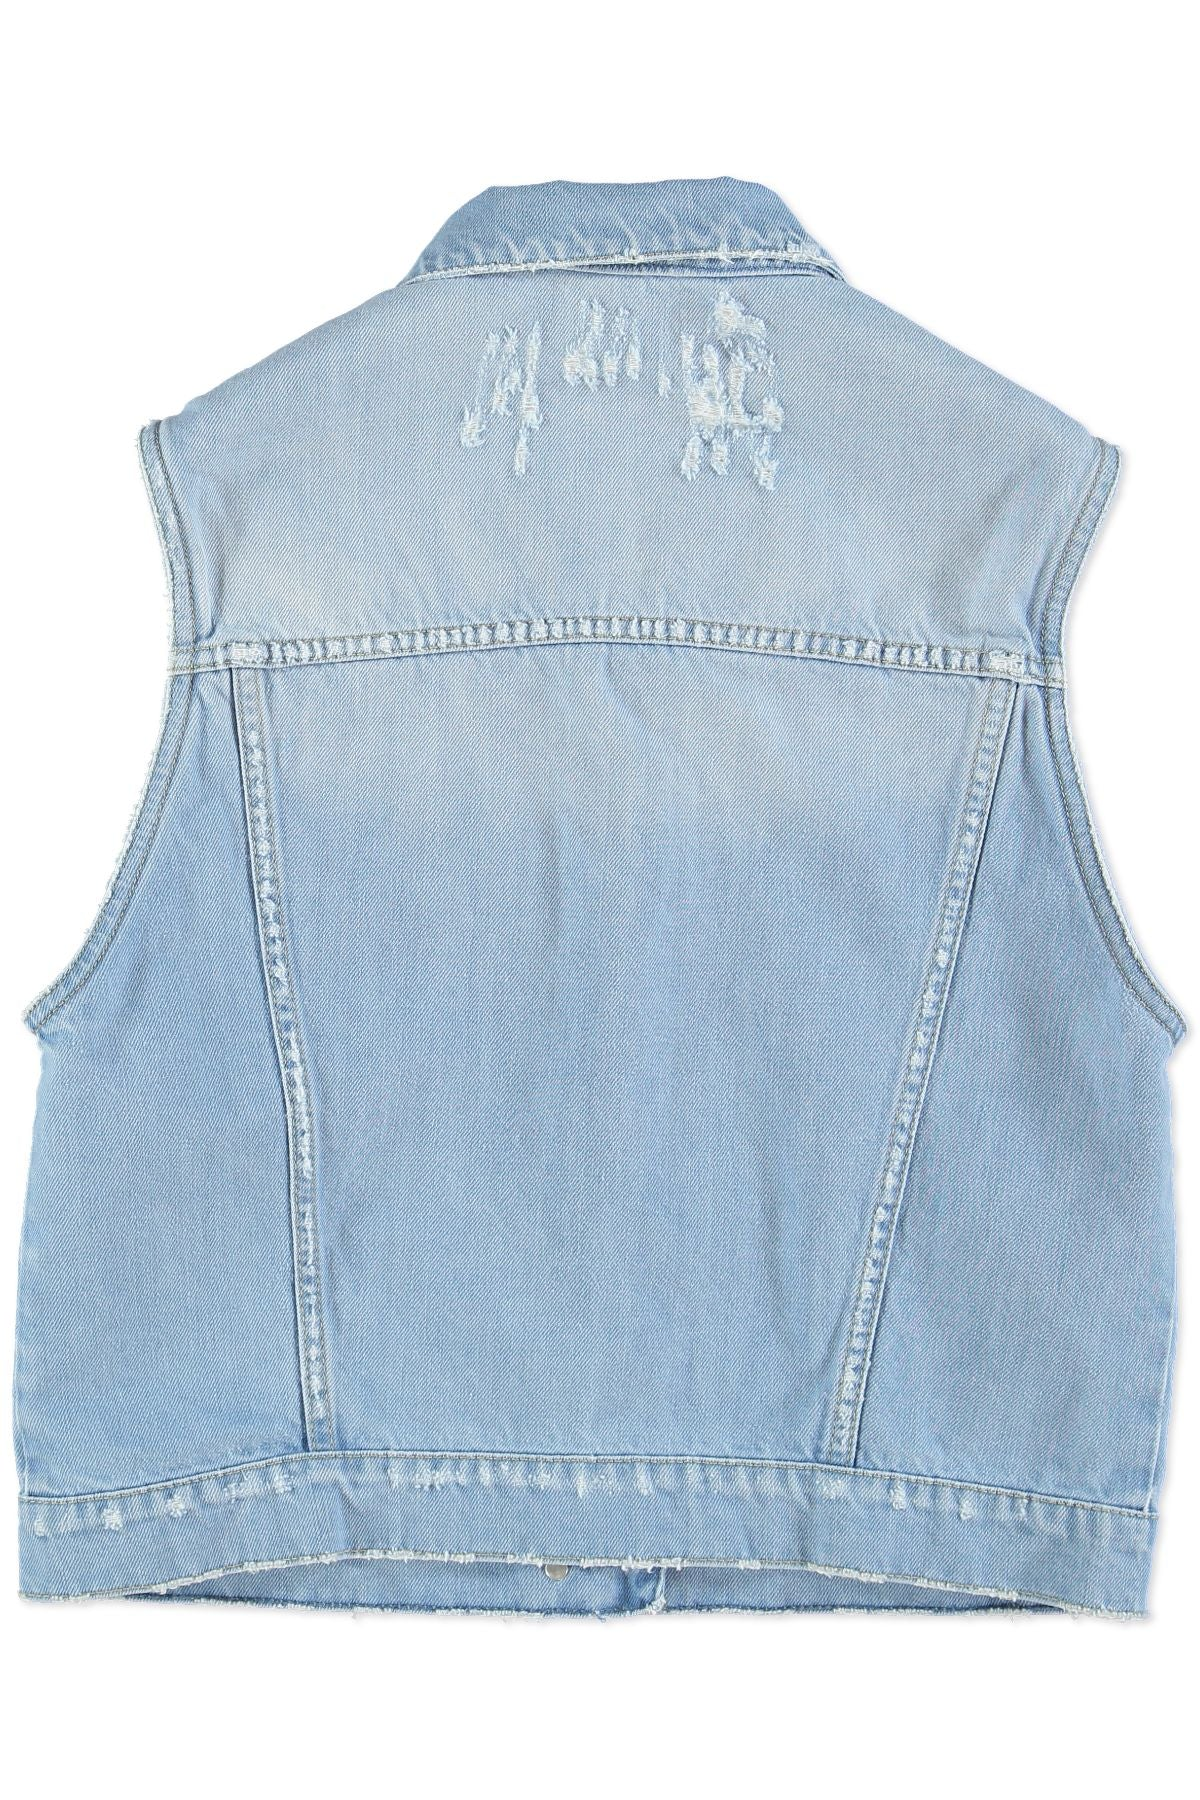 gilet_denim_42RGL01_back-ki6_who_are_you